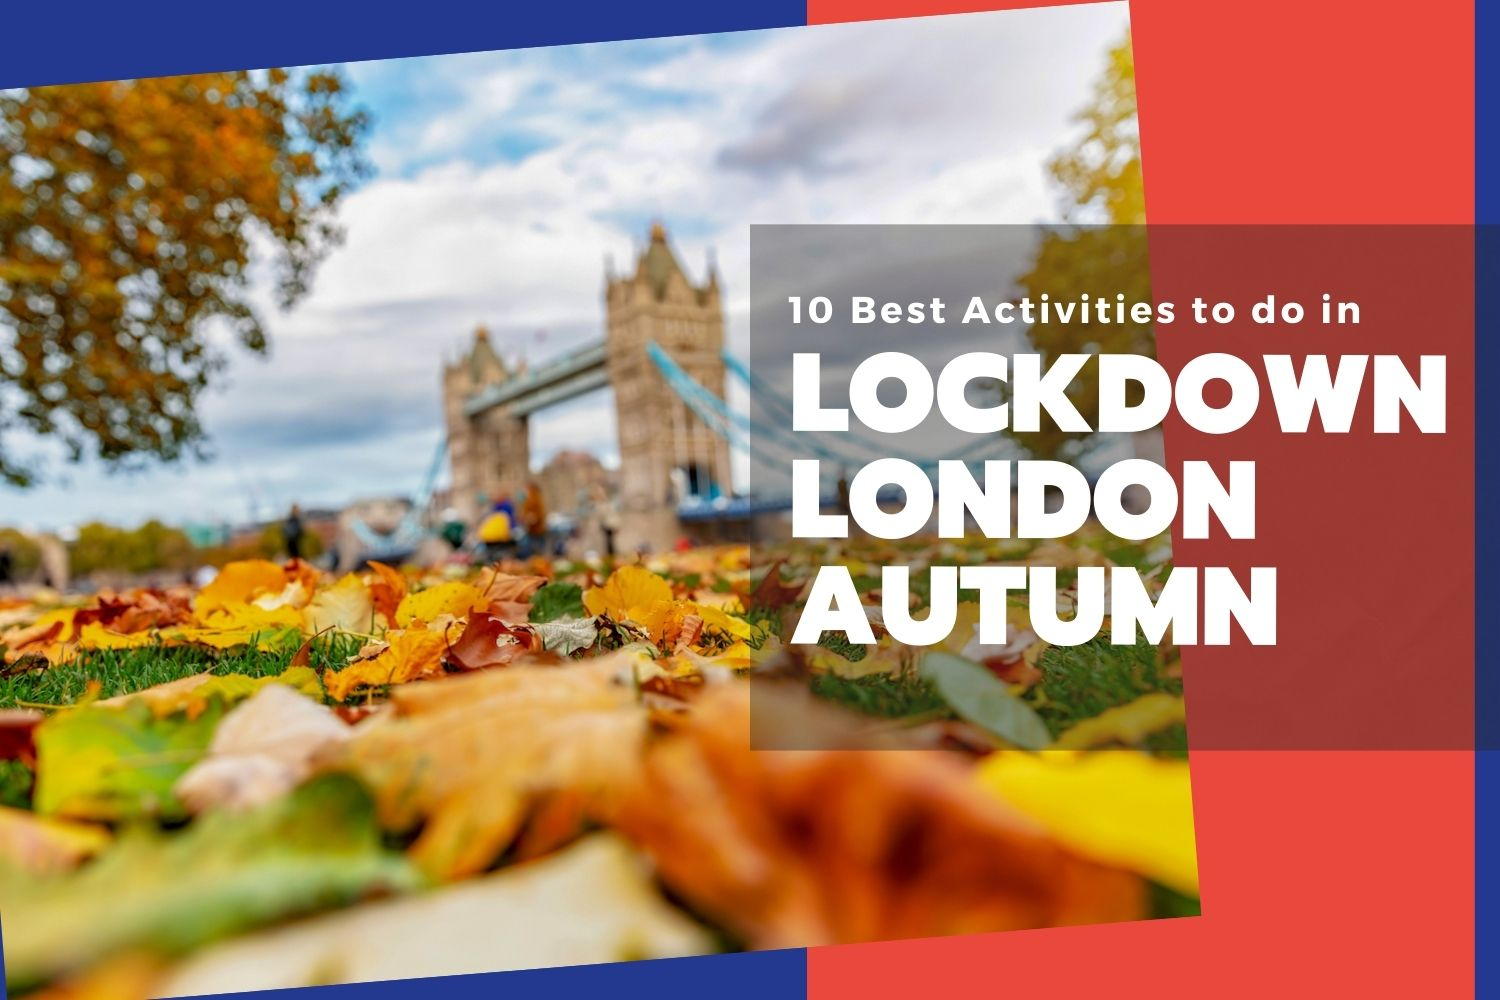 10 Best Activities to do in Lockdown London this Autumn